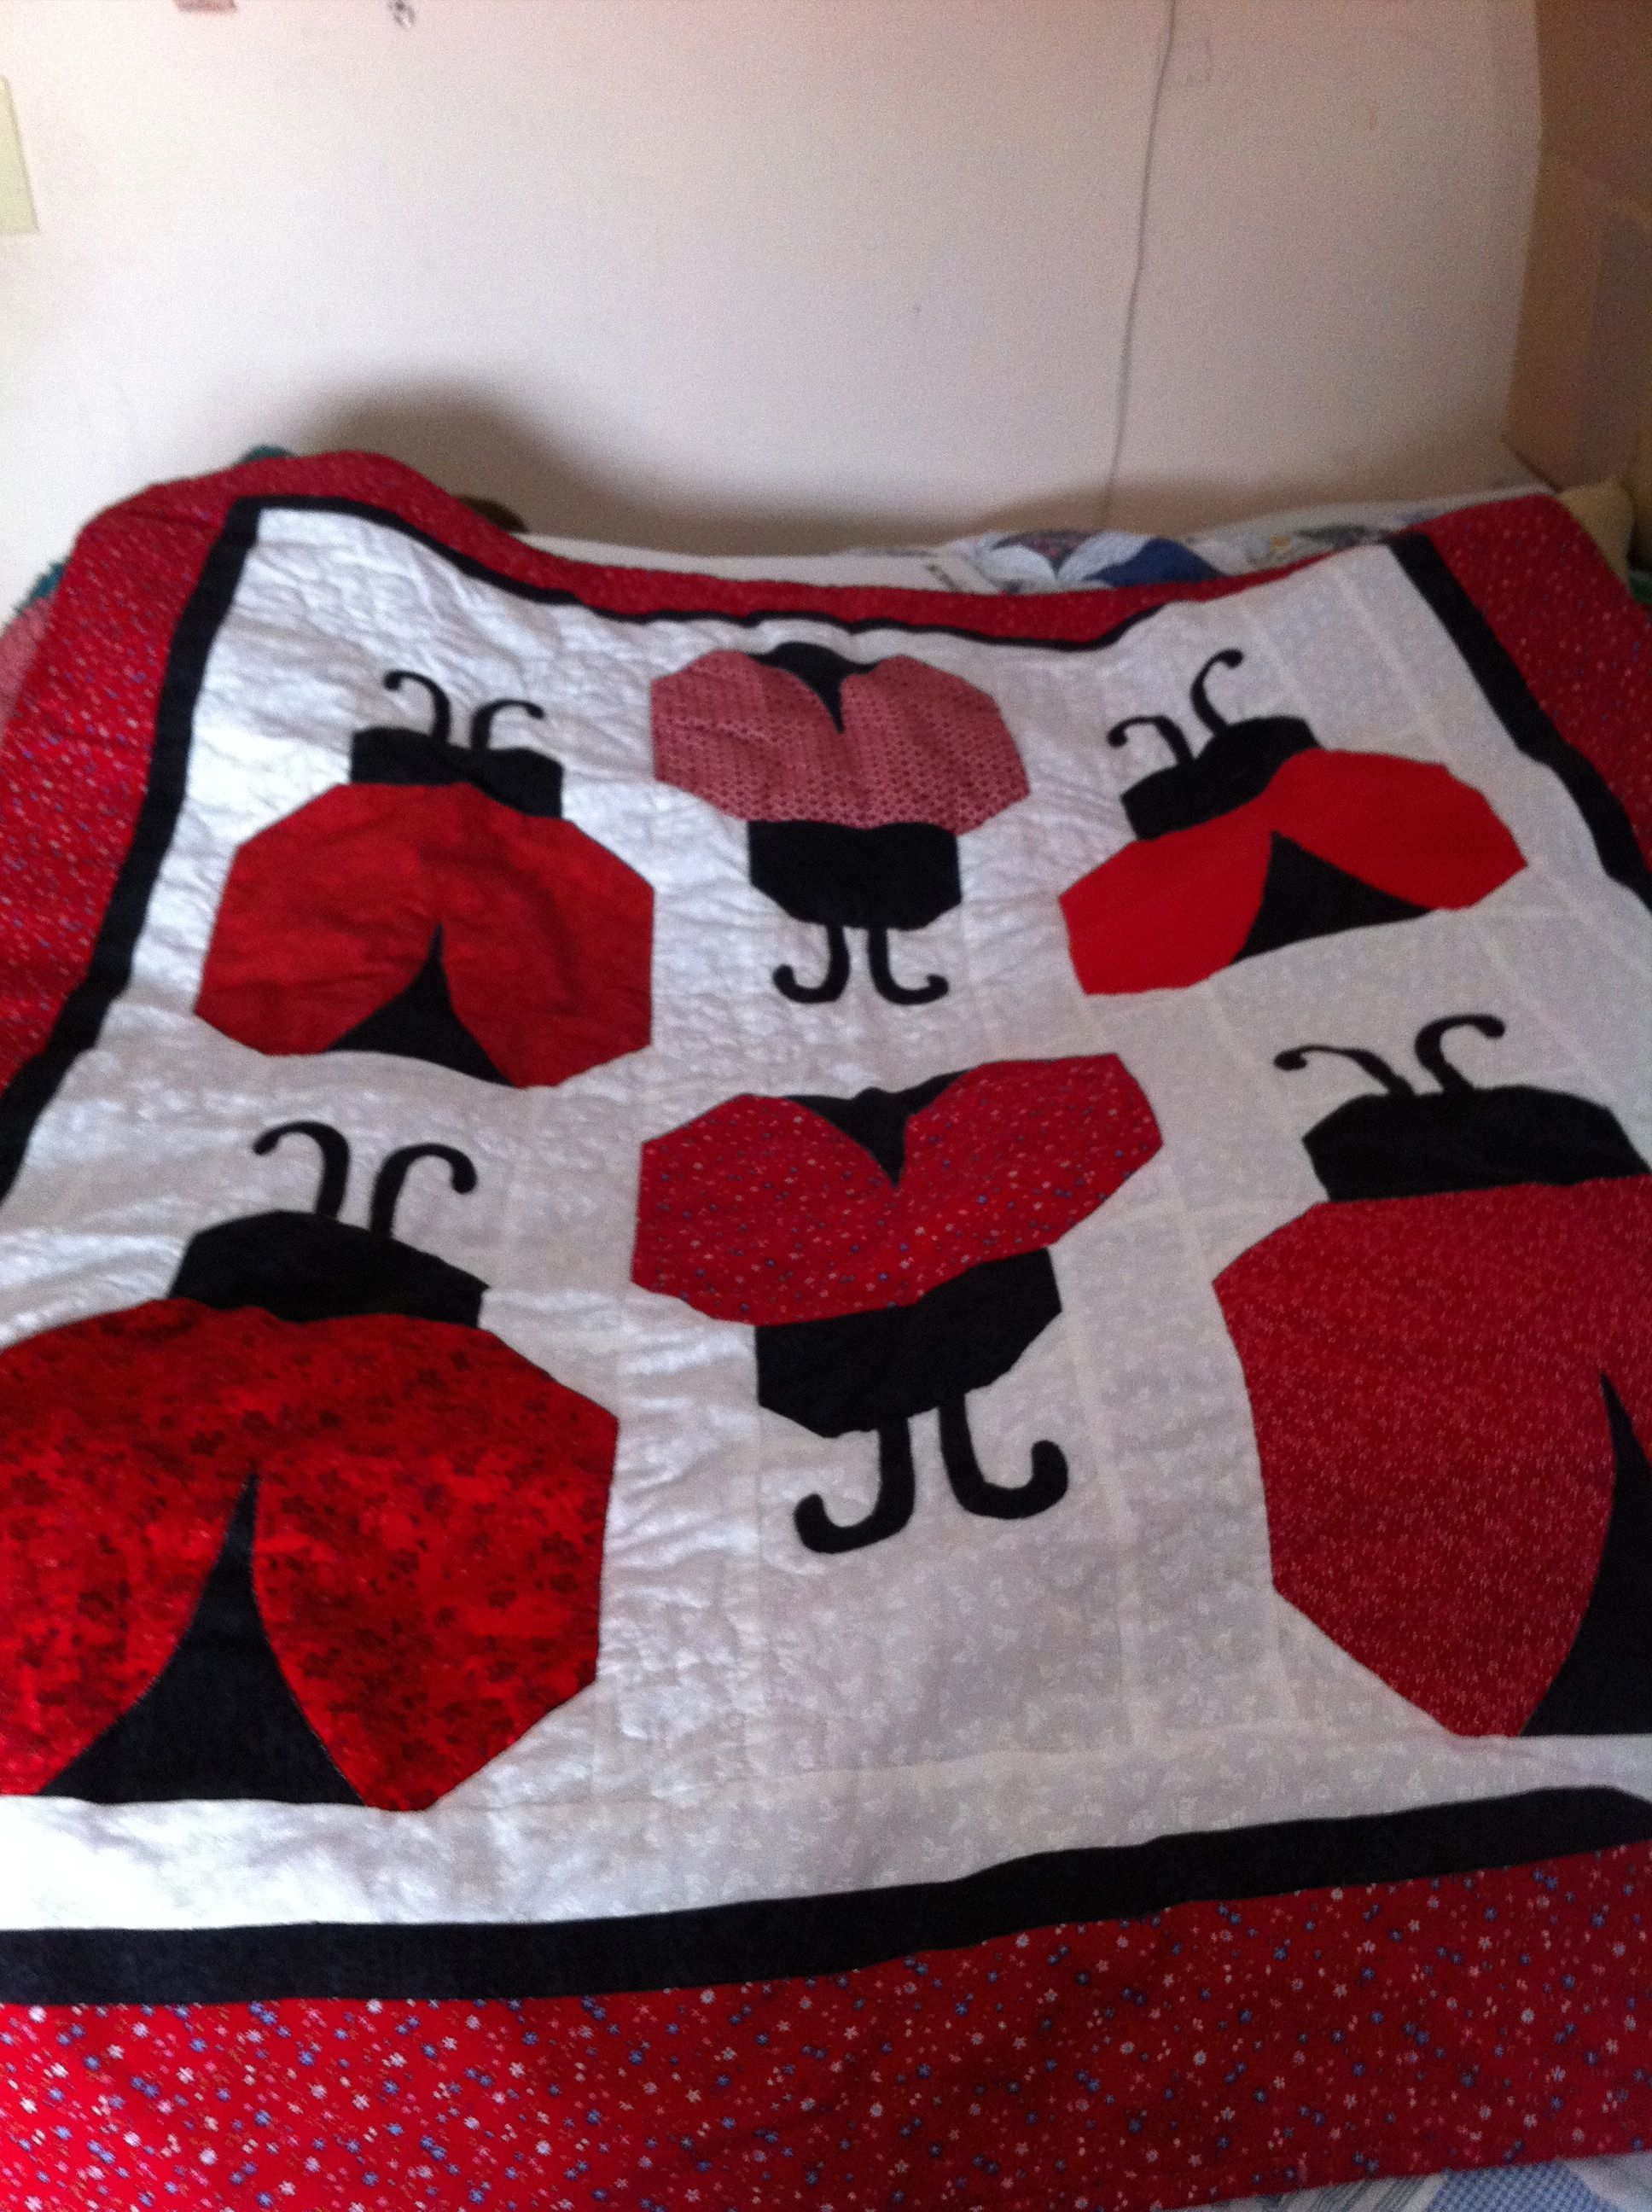 Ladybug Quilt | General Sewing and Crafts | Pinterest | Ladybug ... : lady bug quilts - Adamdwight.com